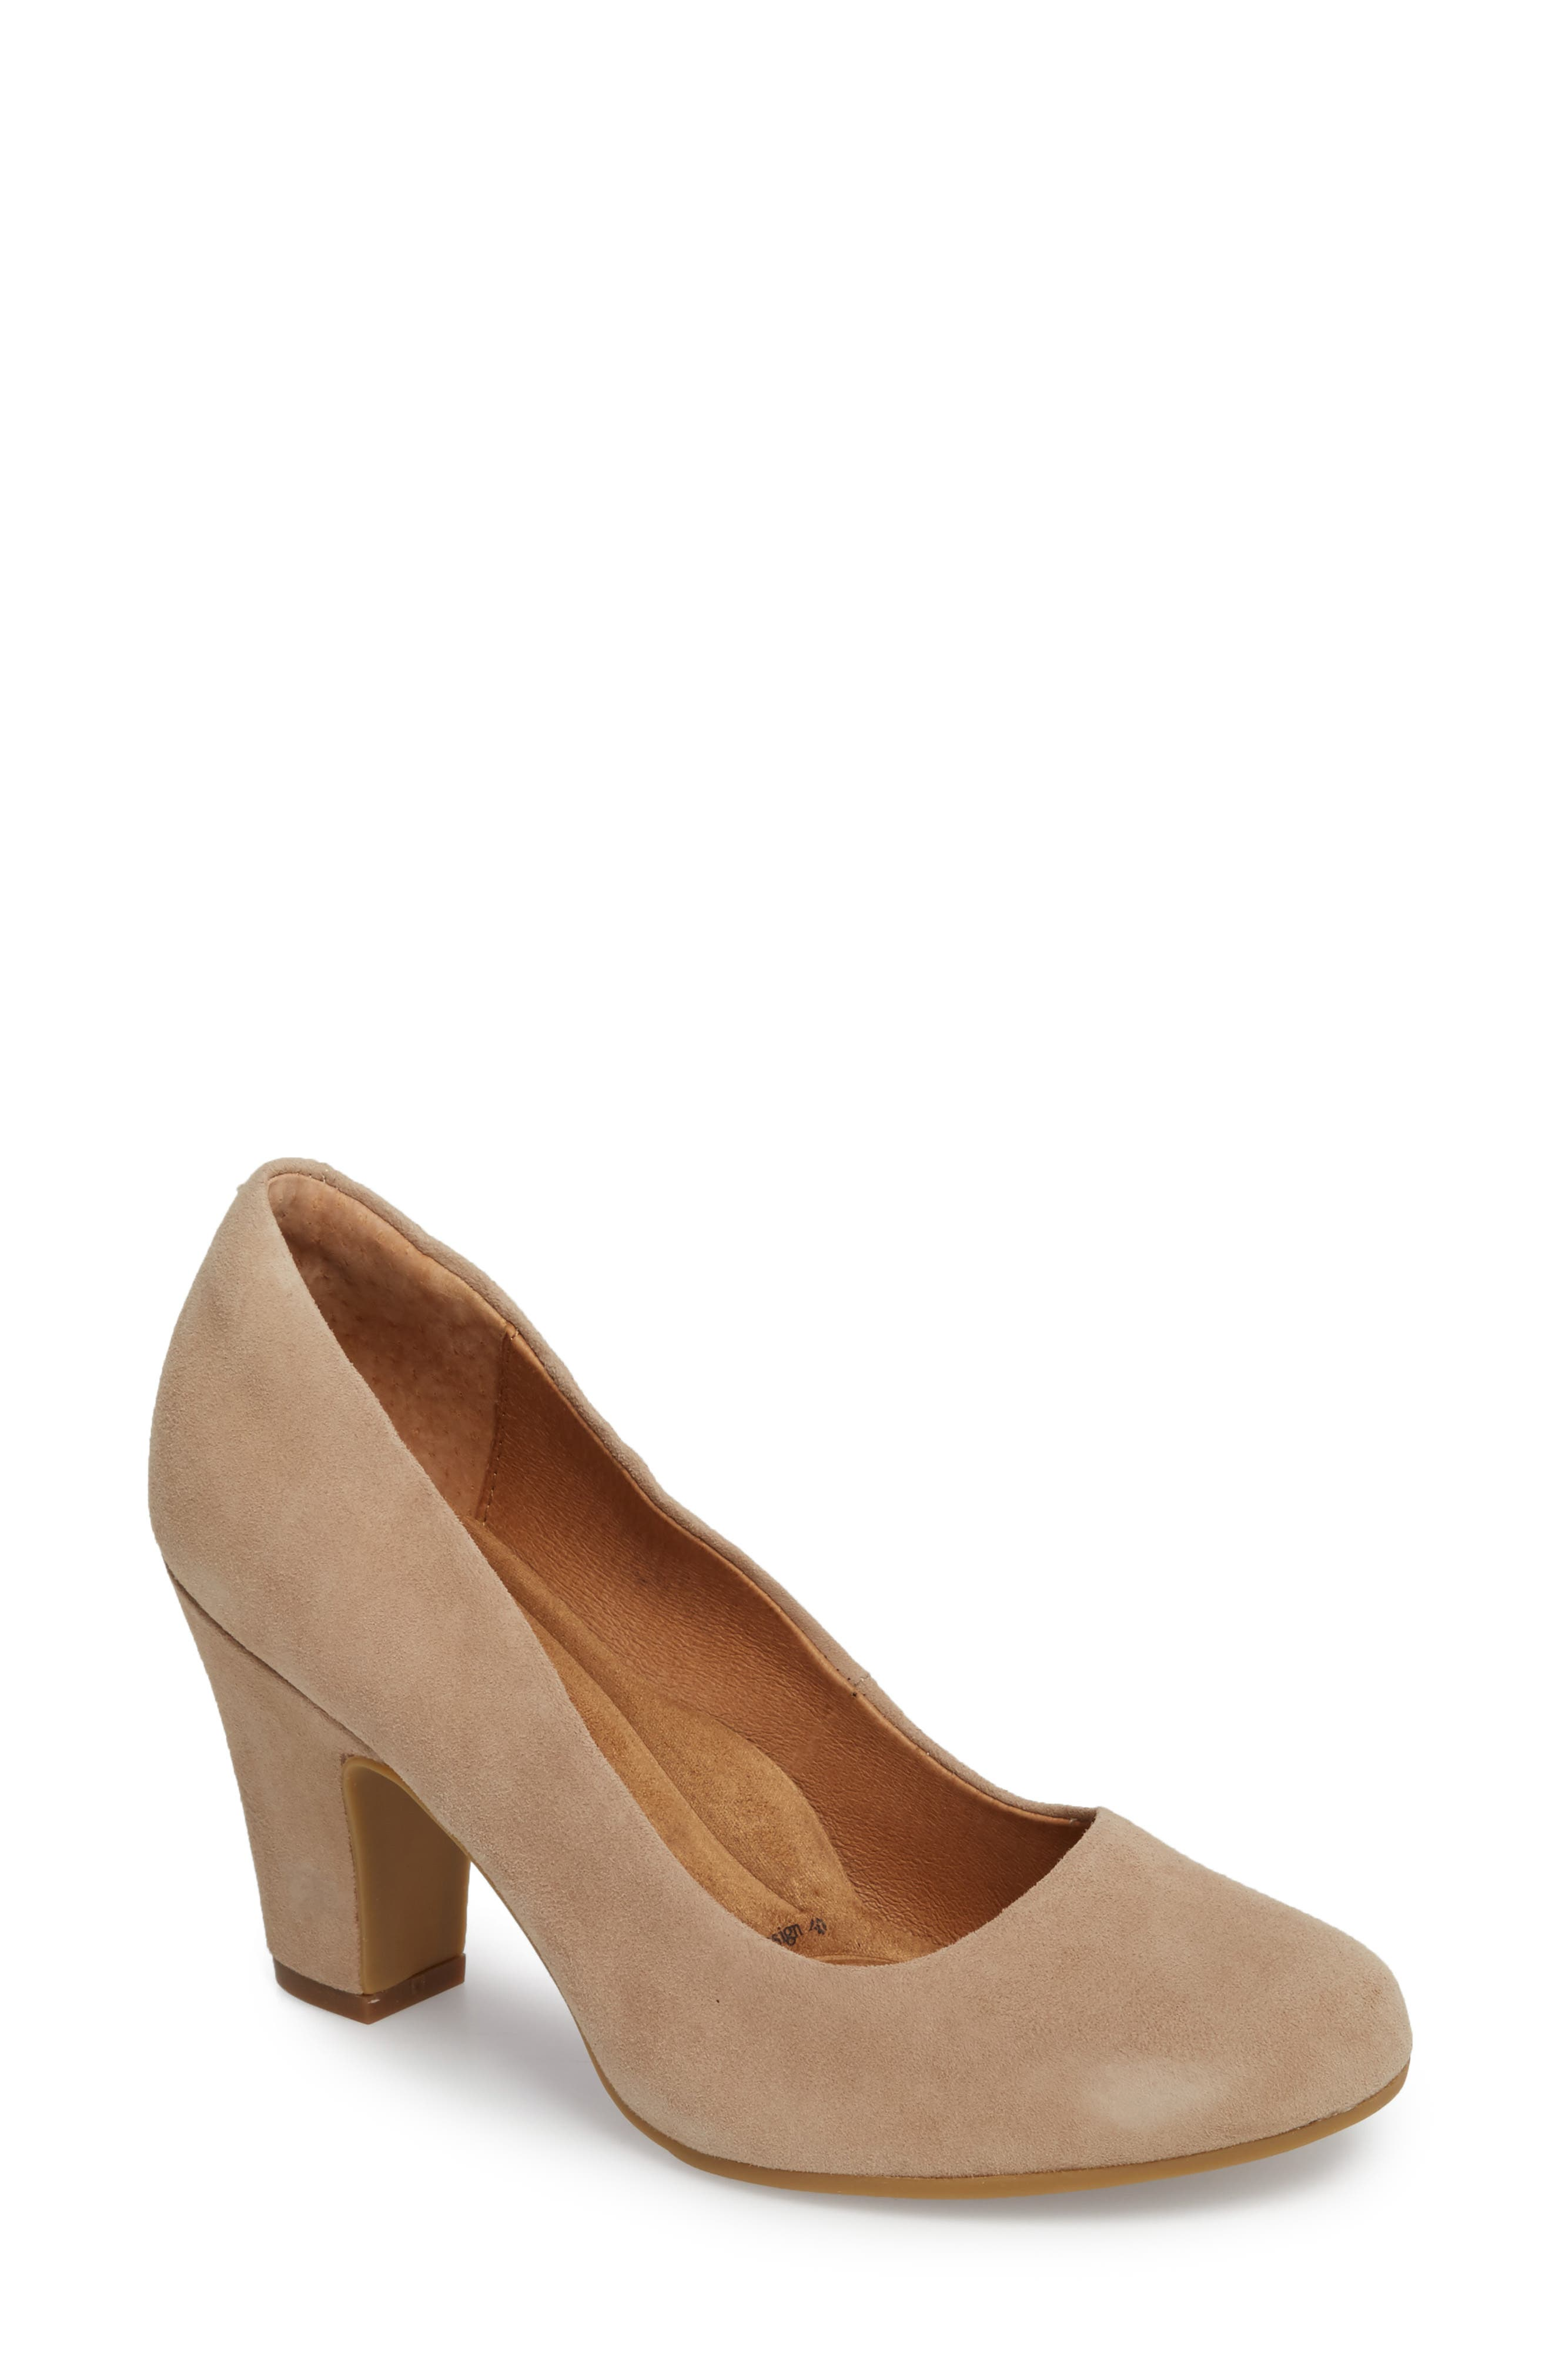 Madina Pump,                         Main,                         color, BAYWATER SUEDE